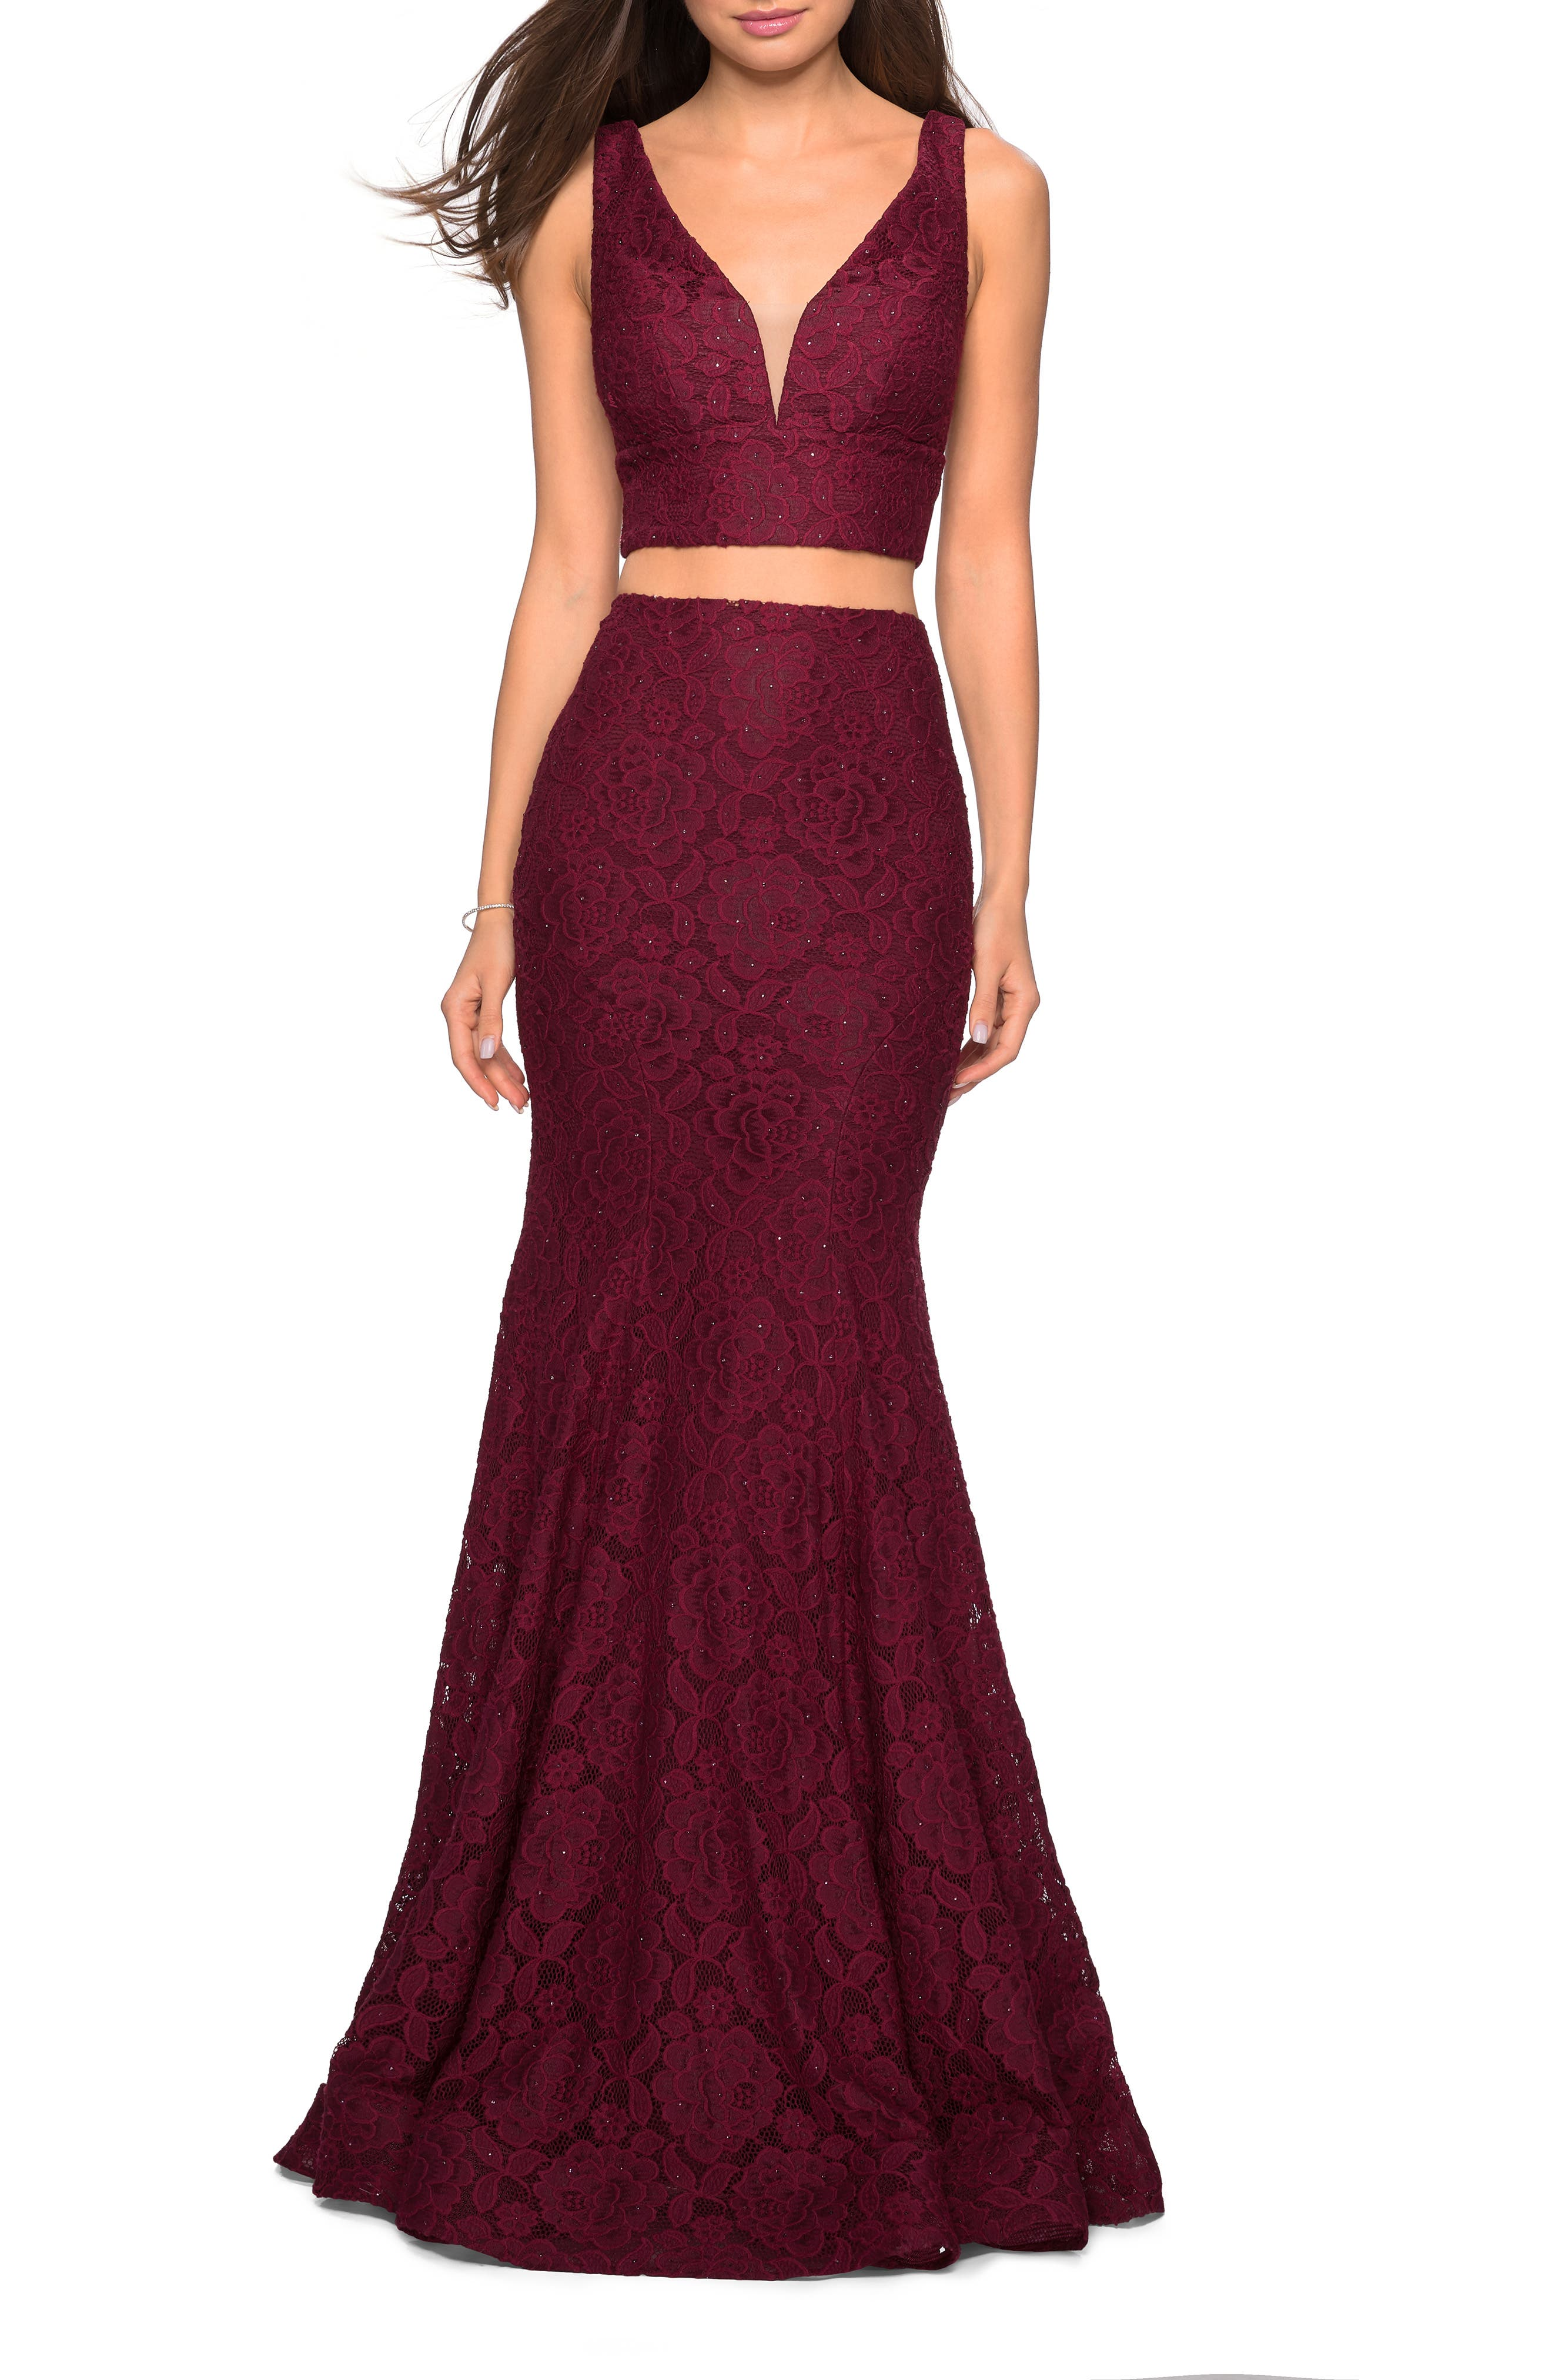 La Femme Two-Piece Stretch Lace Mermaid Evening Dress, Burgundy